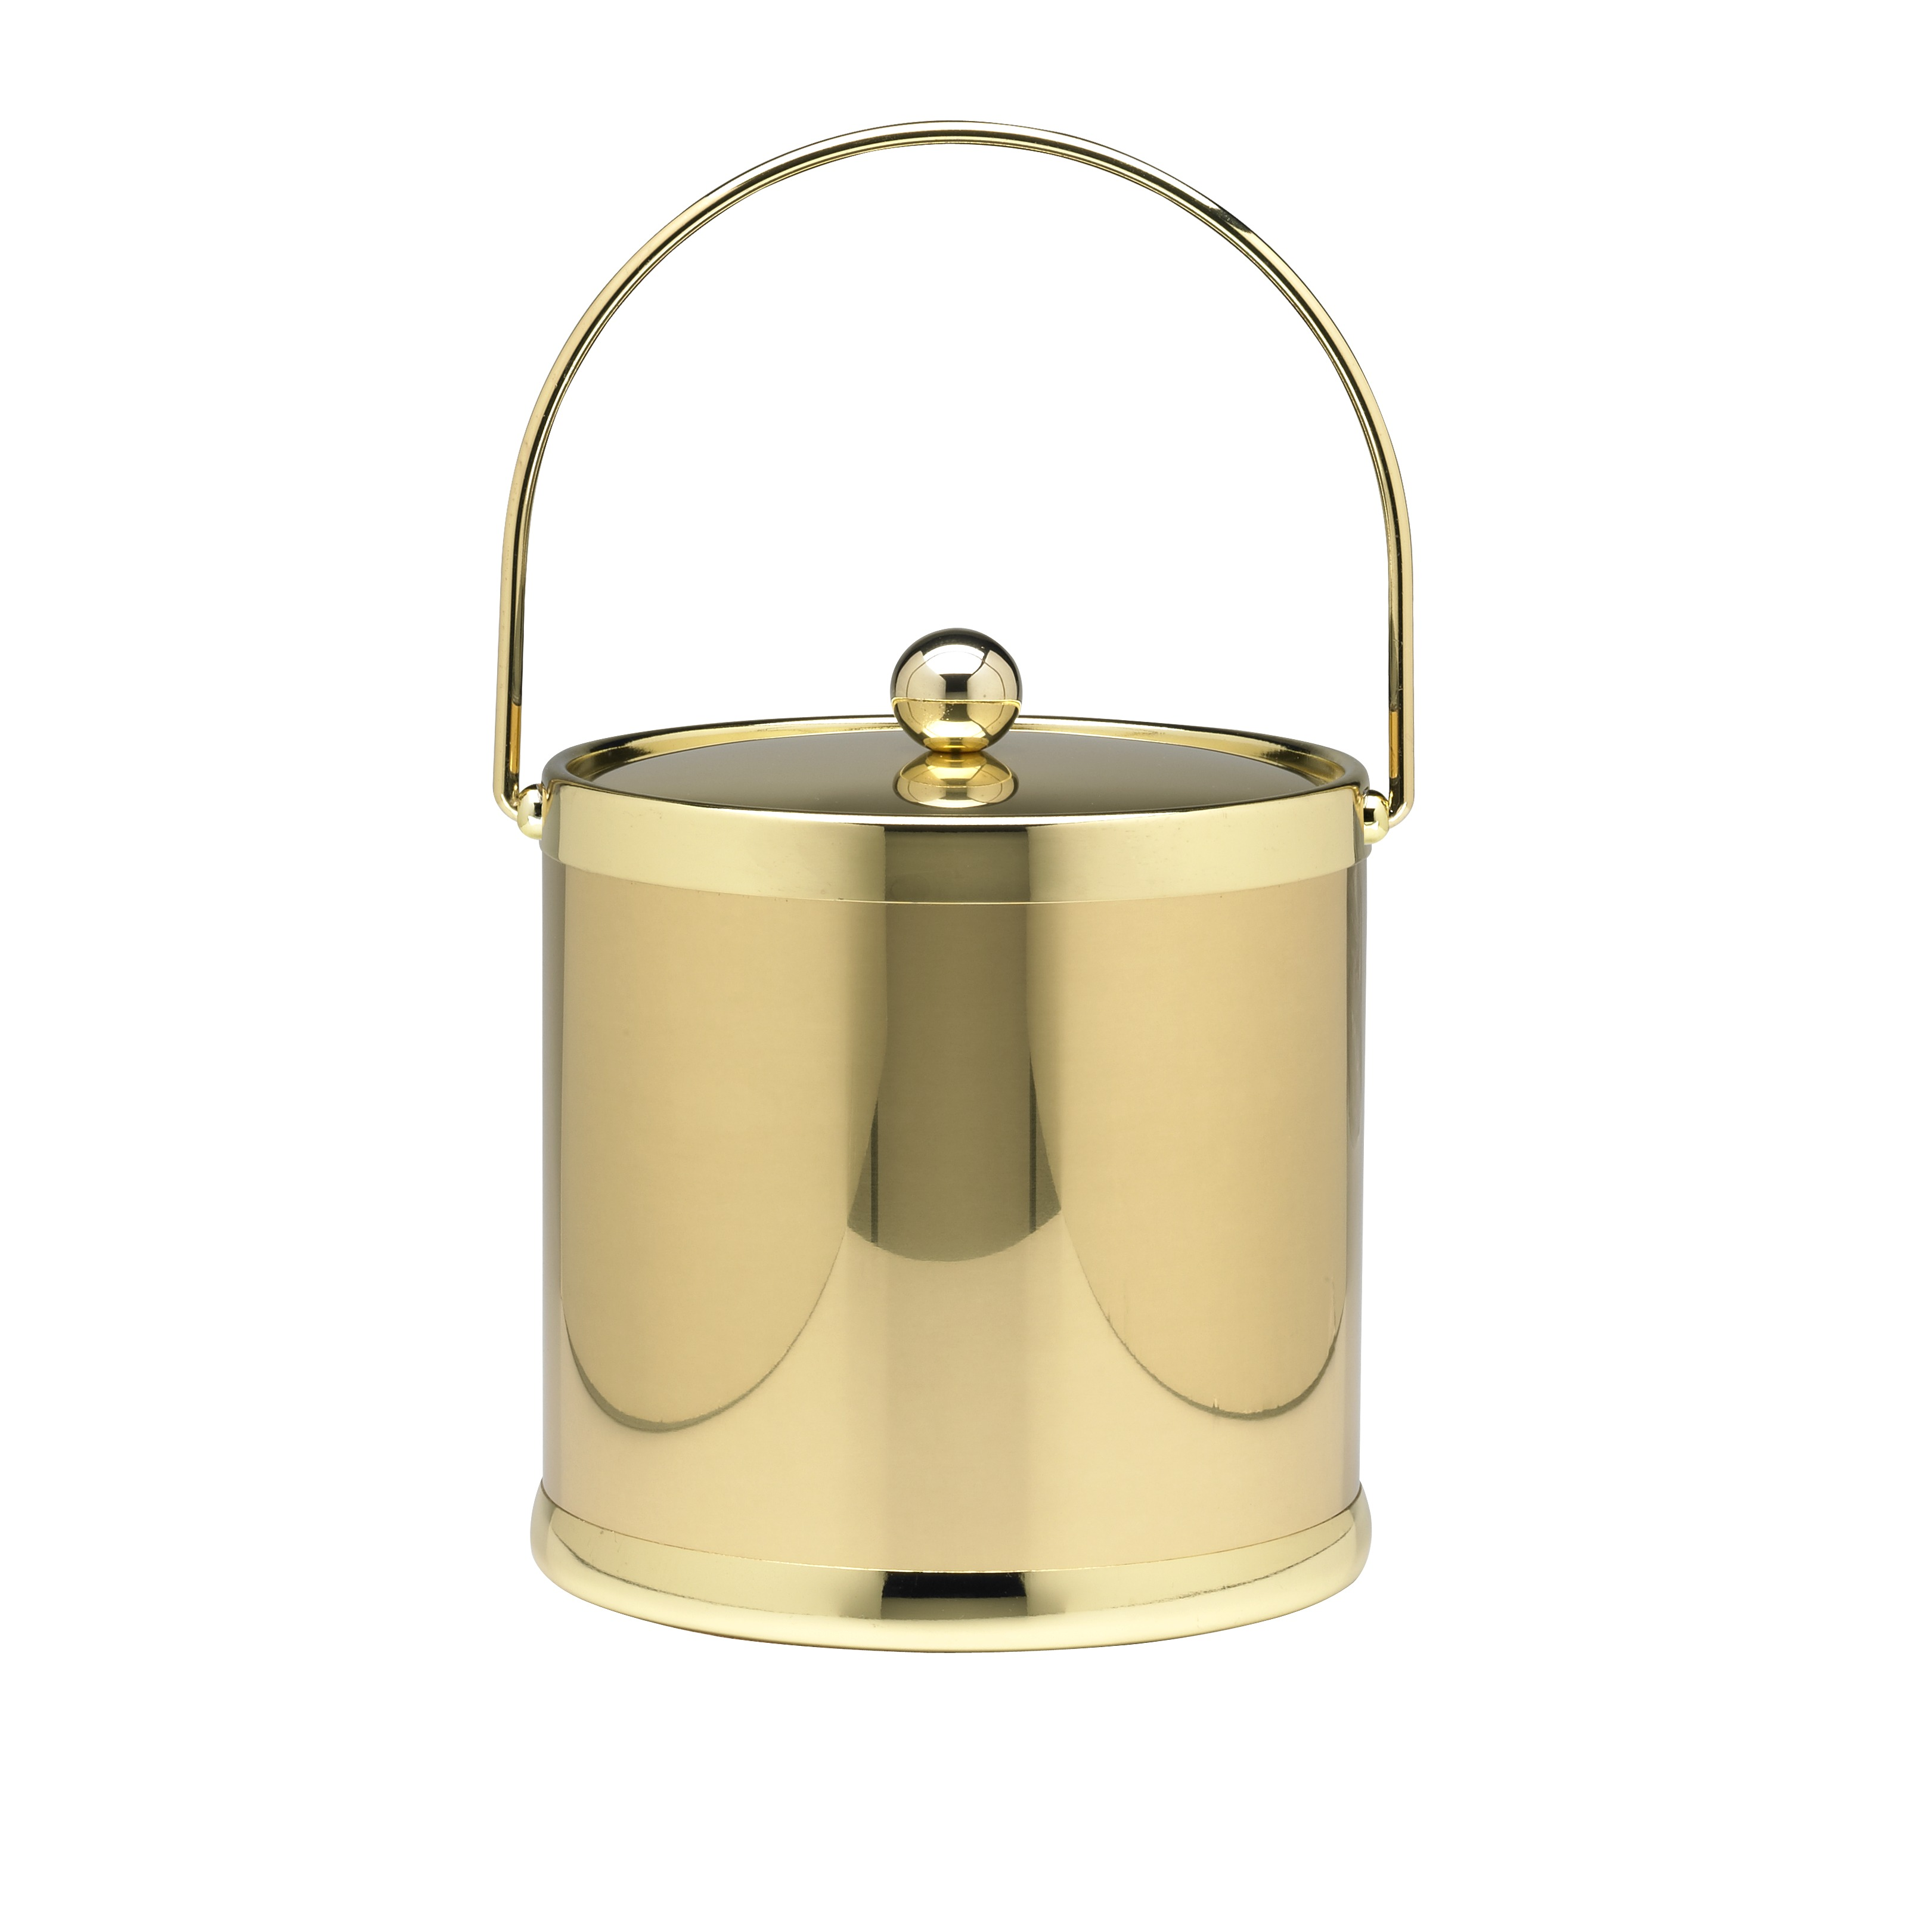 Americano 3 Qt Ice Bucket with Bale Handle in Brass by Kraftware Corporation